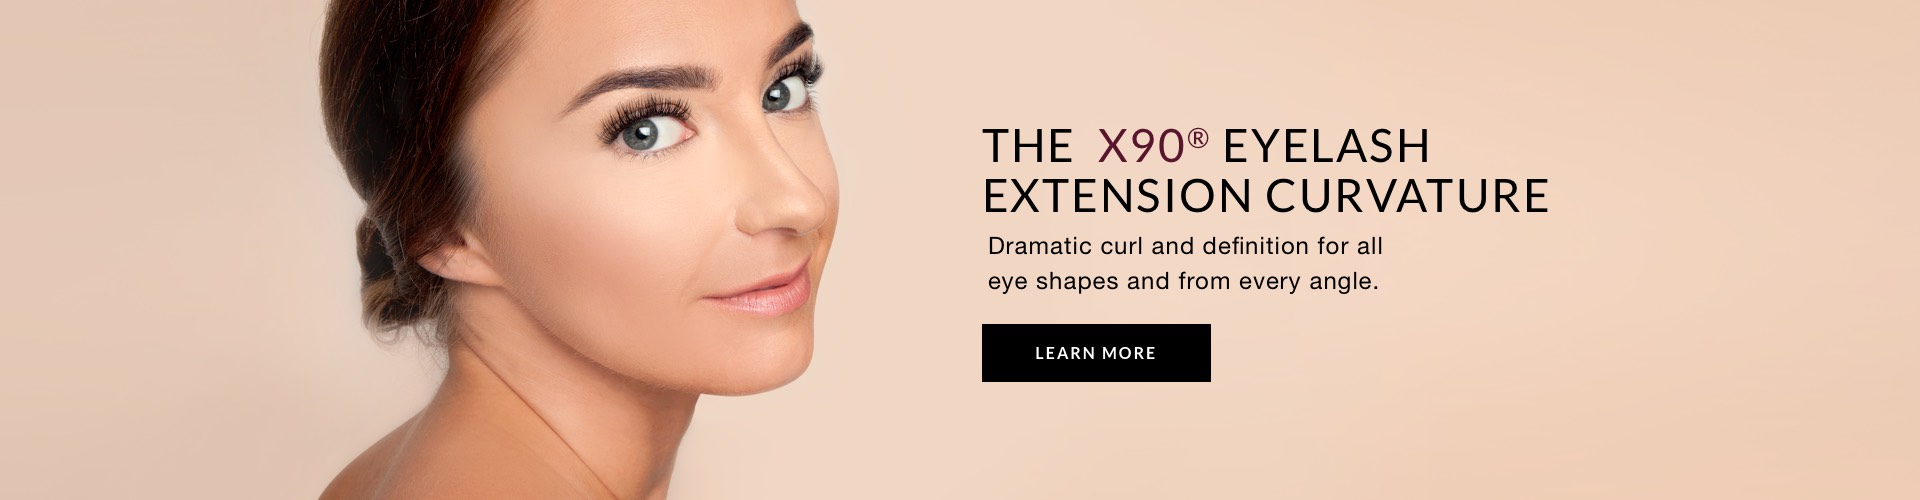 The X90 Eyelash Extension Curvature. Dramatic curl and definition for all eye shapes and from every angle.